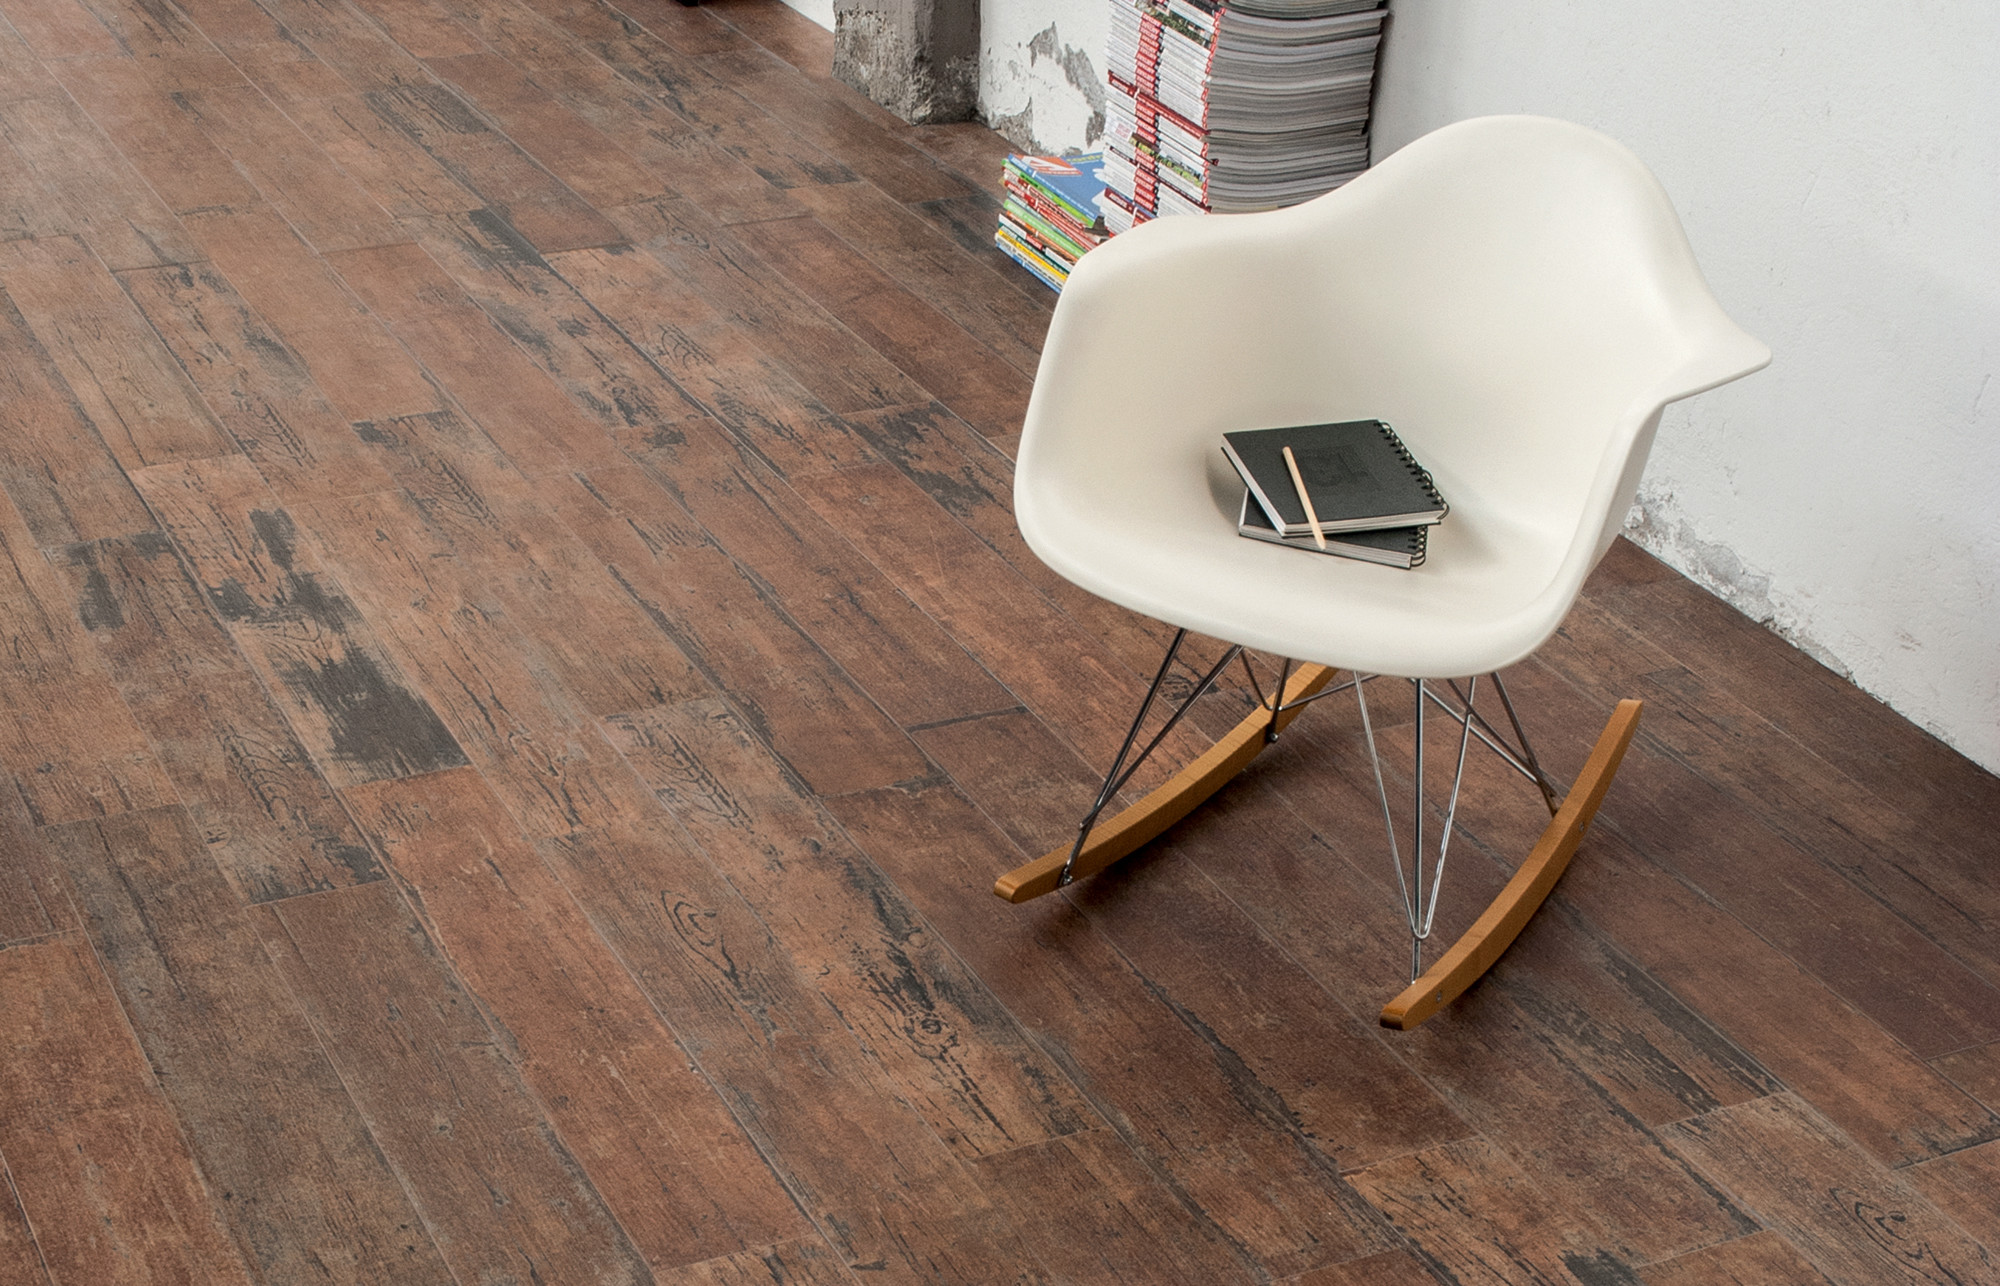 diamond w hardwood flooring of ceramic tile for your upcoming project search now with charmwood by kate lo tile and stone